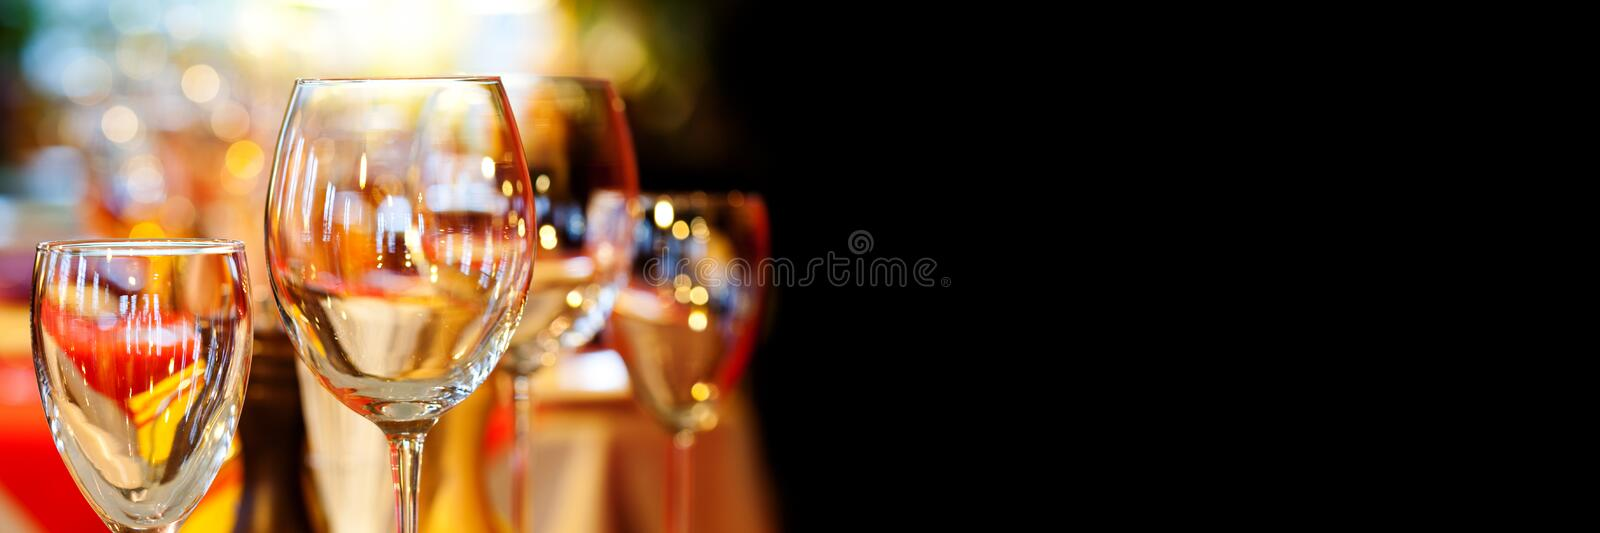 Romantic xmas restaurant interior with beautiful crockery tableware. Crystal wine glasses holidays event background. Luxury party celebration or banquet royalty free stock photography